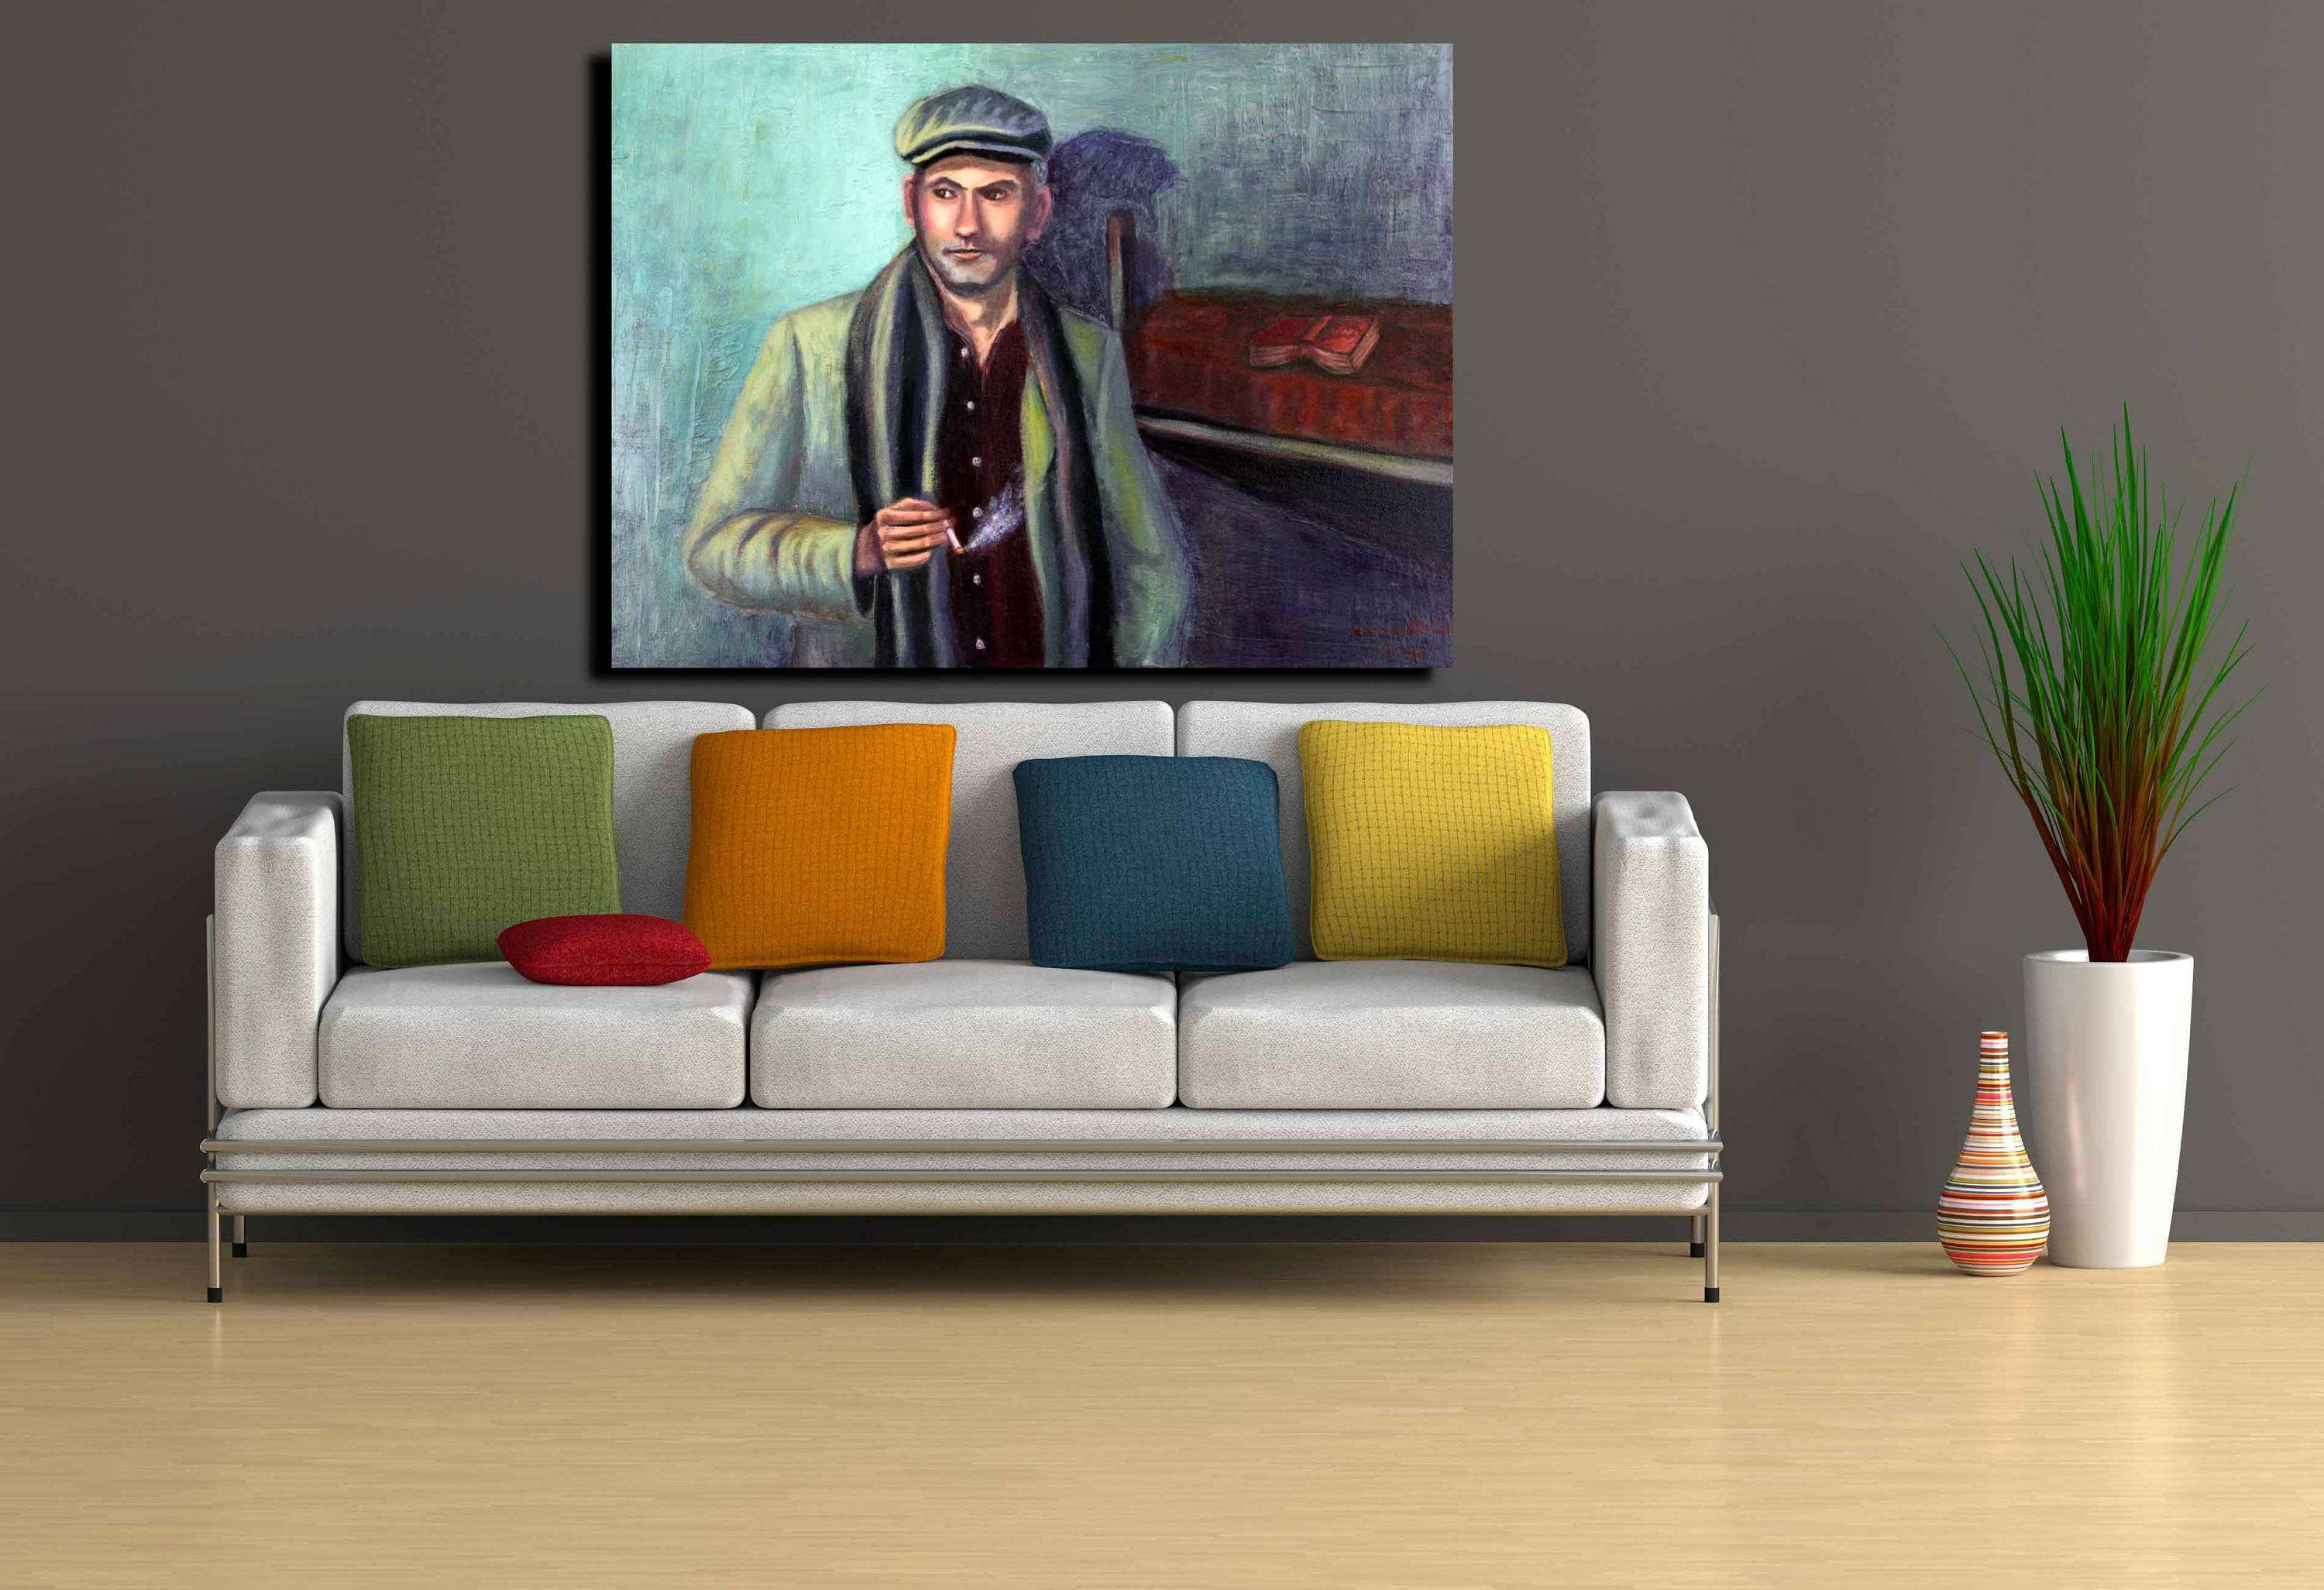 Black and White Wall Art Man Portrait Painting wall art large